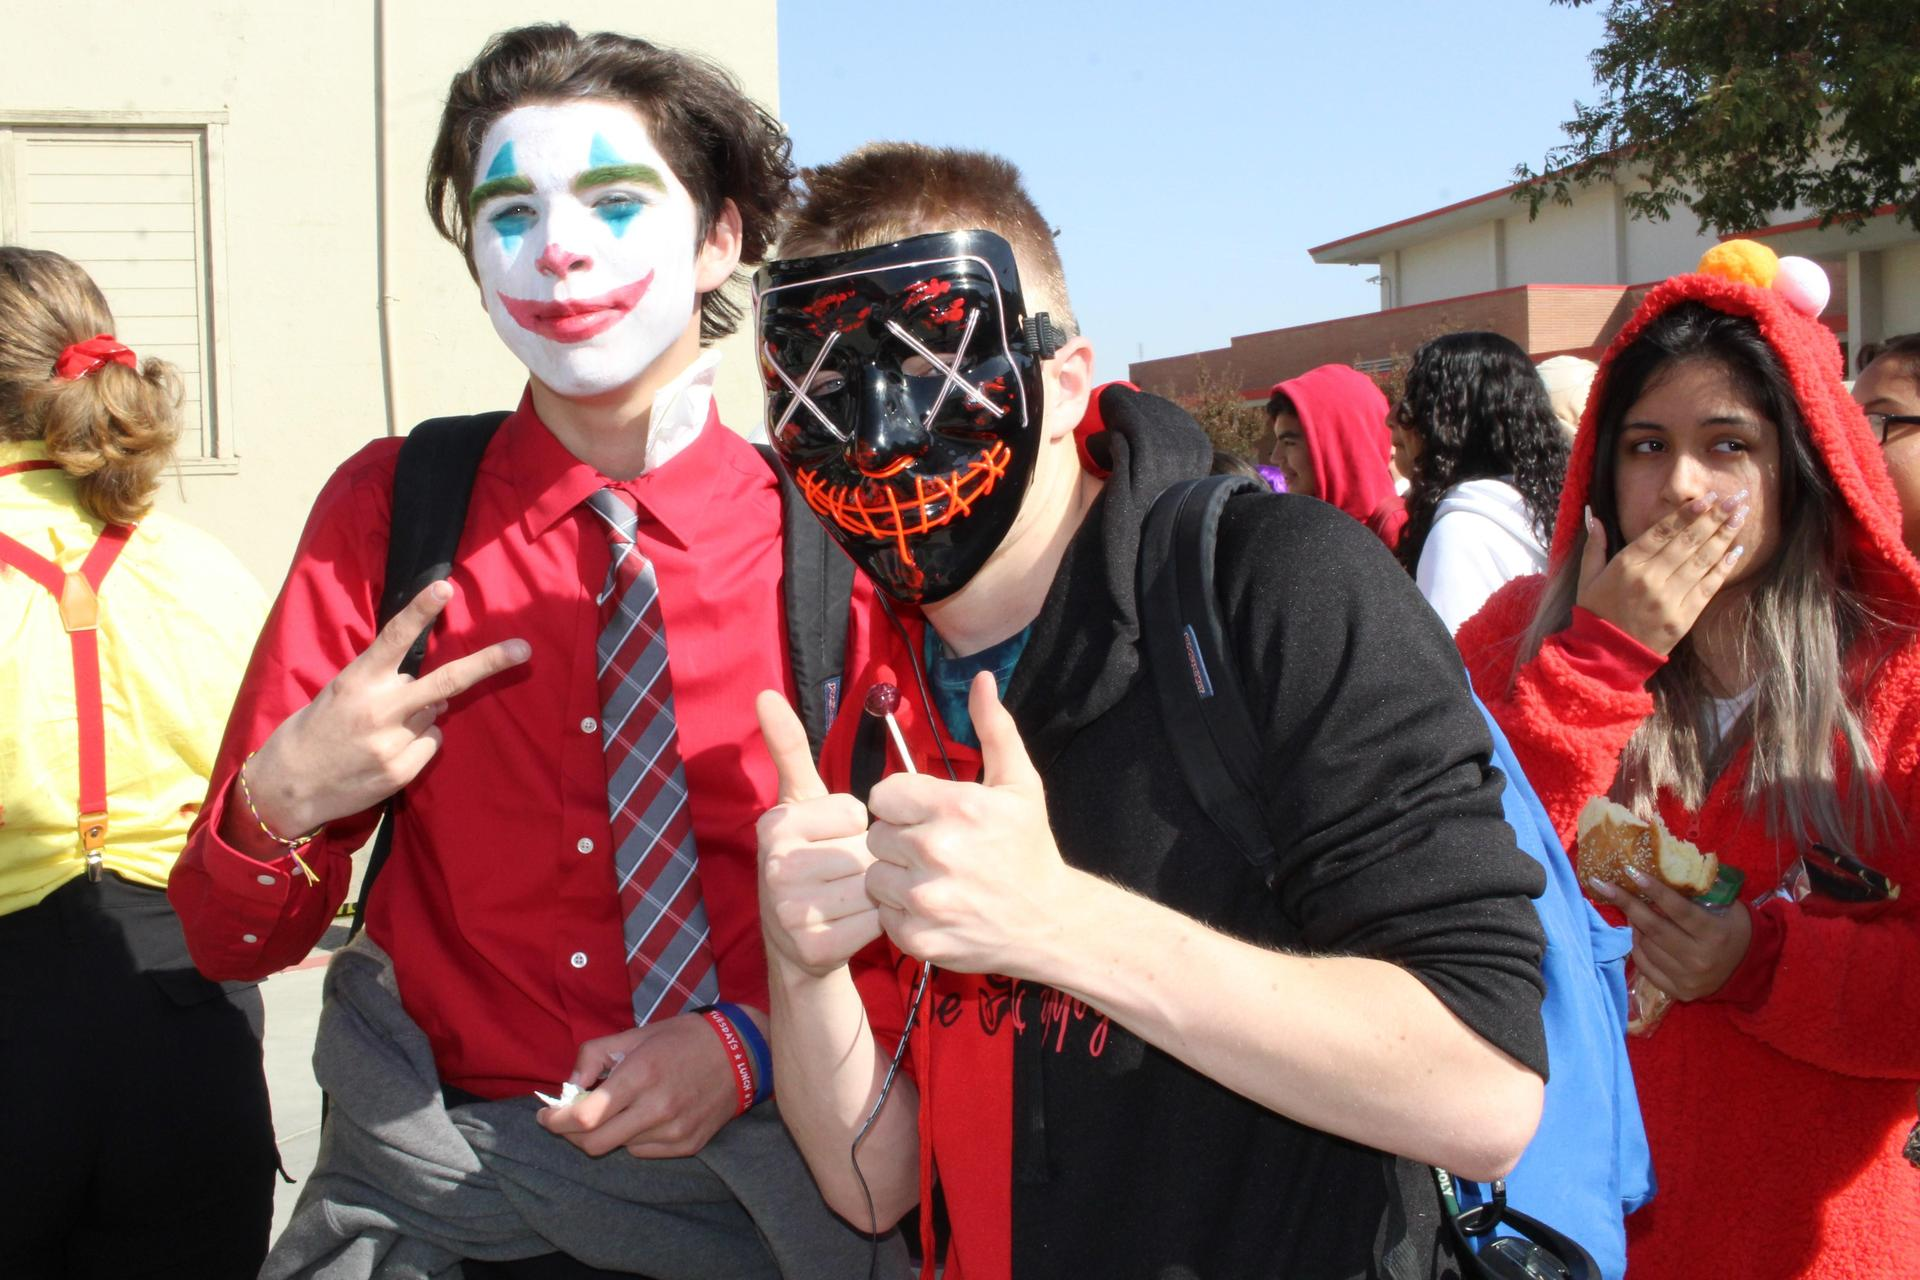 David Patino as the joker and Blake Kazynski as the purge with Mitzy Vasquez-martinez